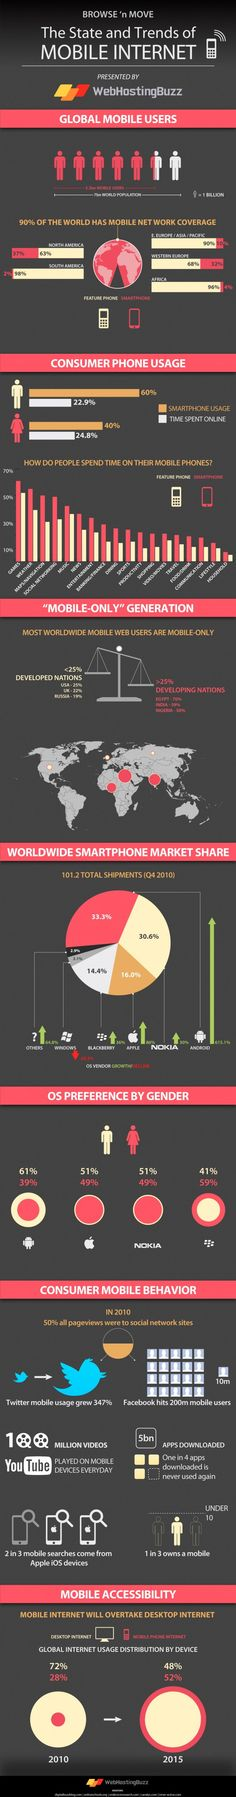 The State And Trends Of Mobile Internet: Browse and move! These are the global trends of mobile interenet in an app addicted world.